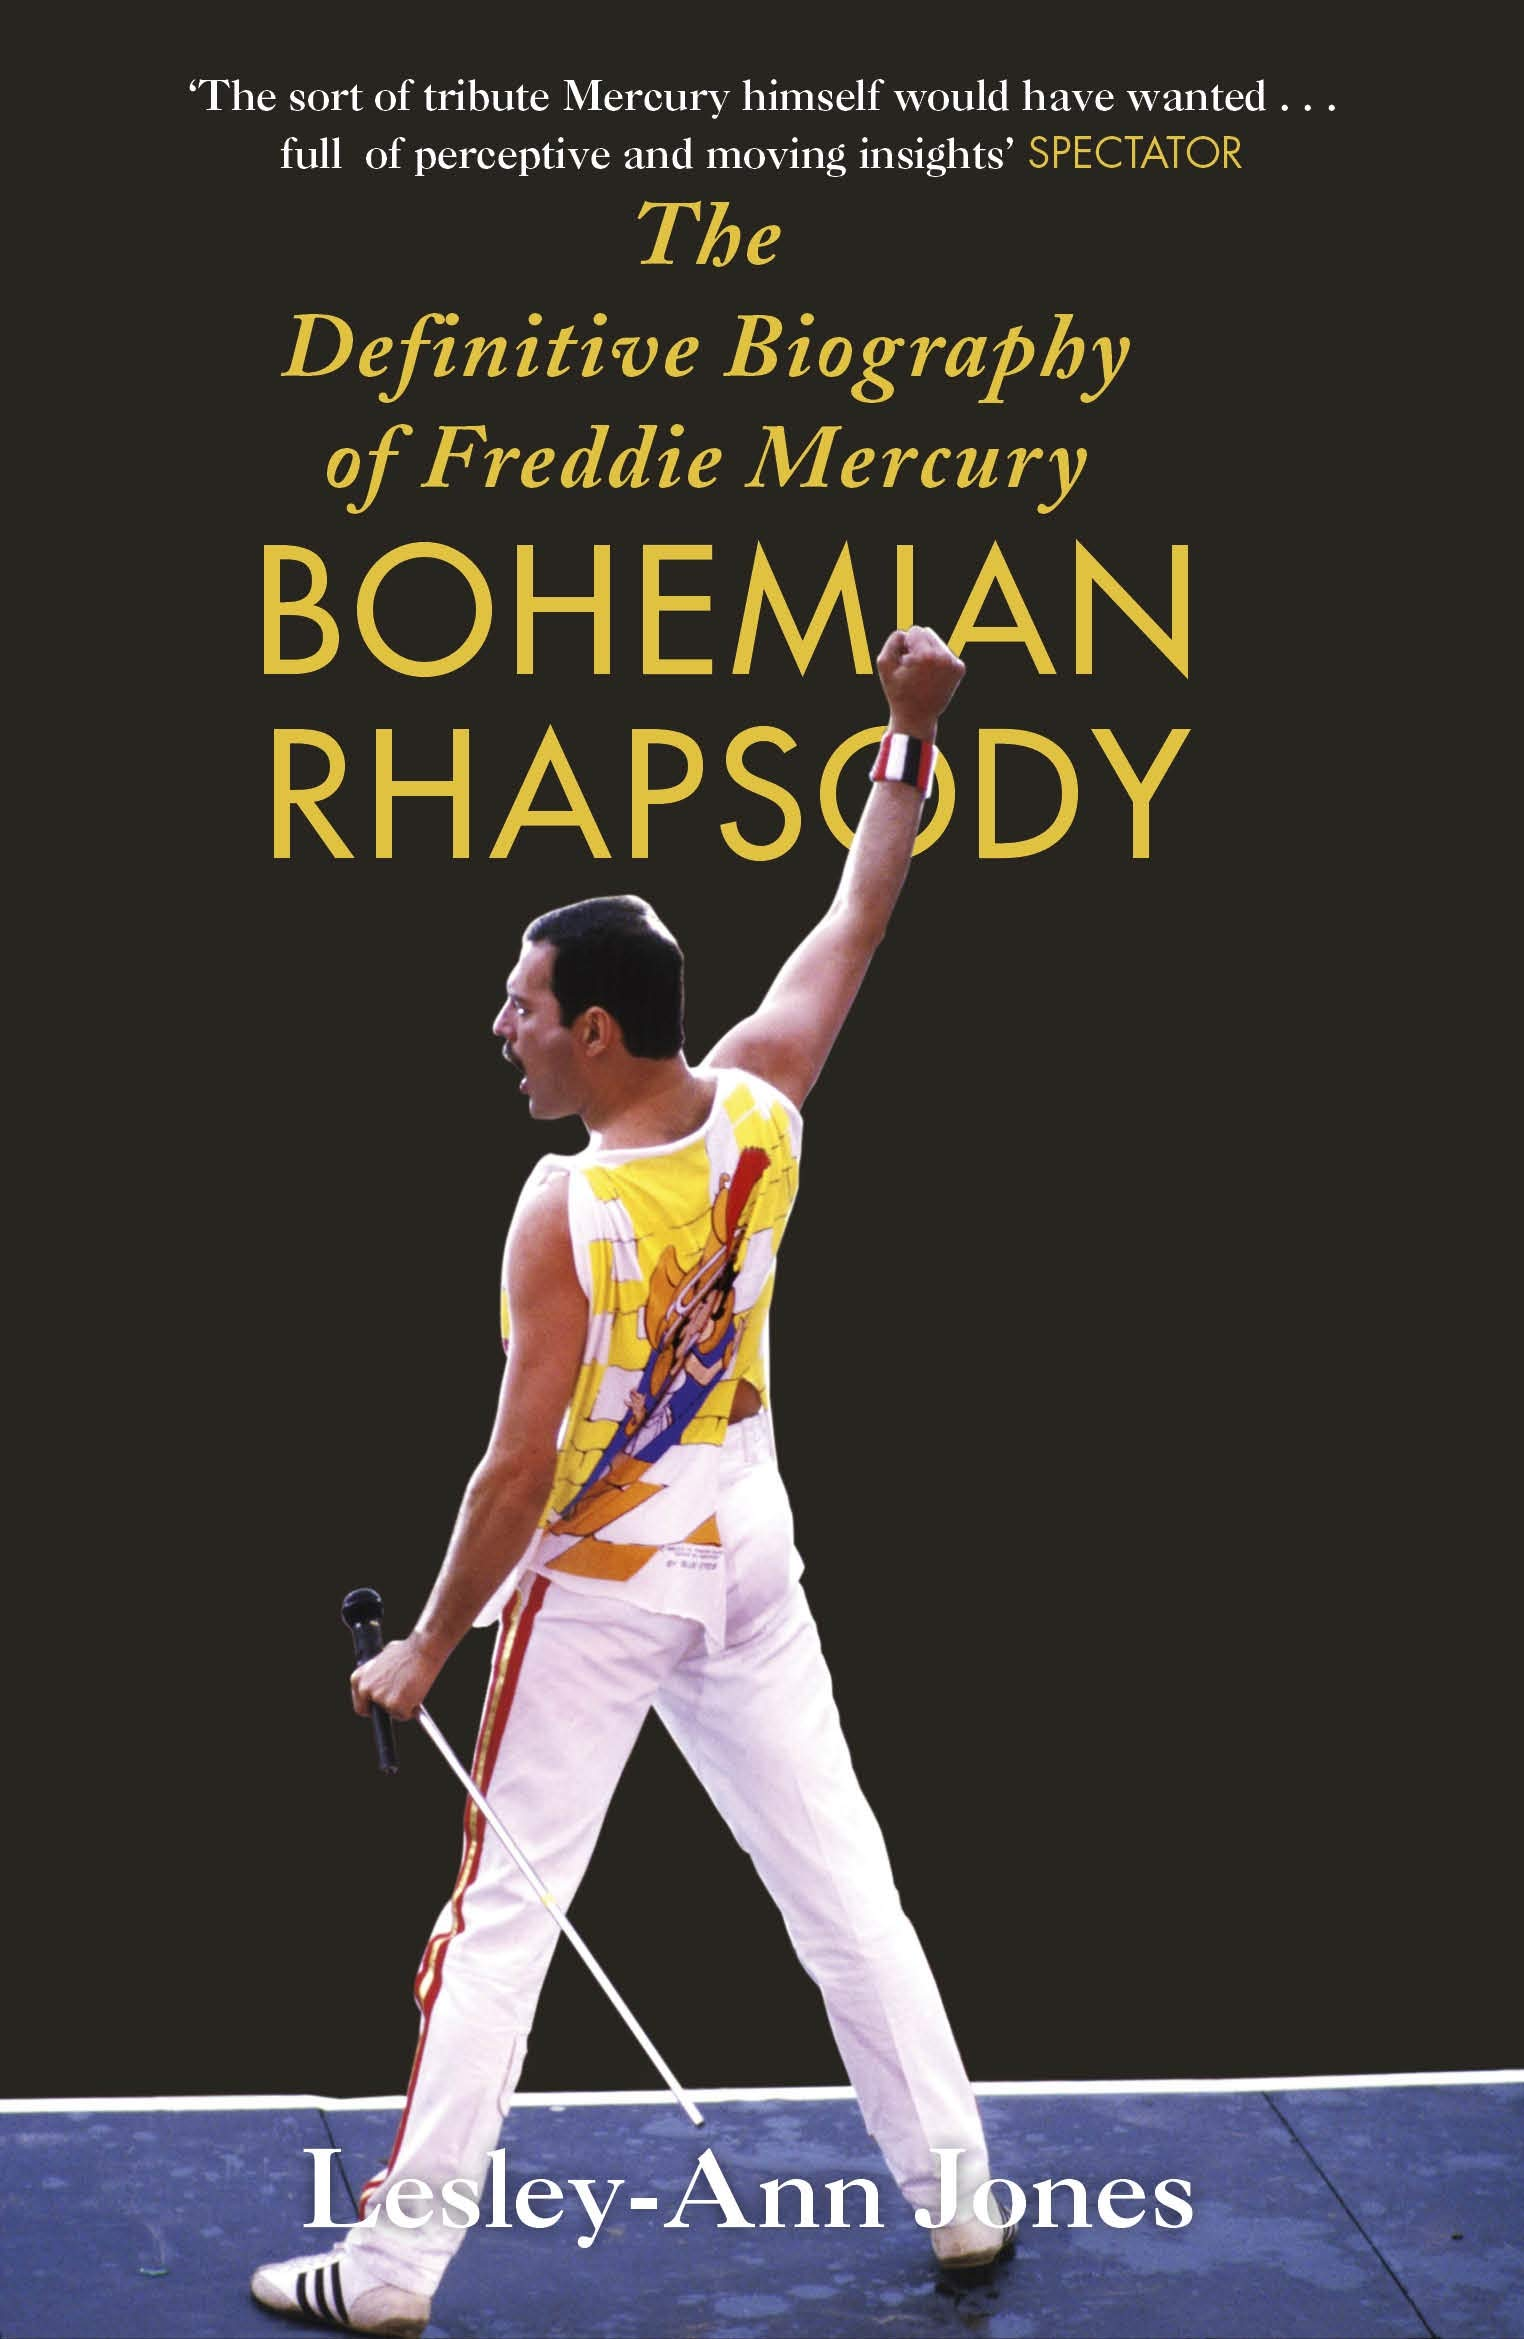 Freddie Mercury: Amazon.es: Lesley-Ann Jones: Libros en idiomas extranjeros